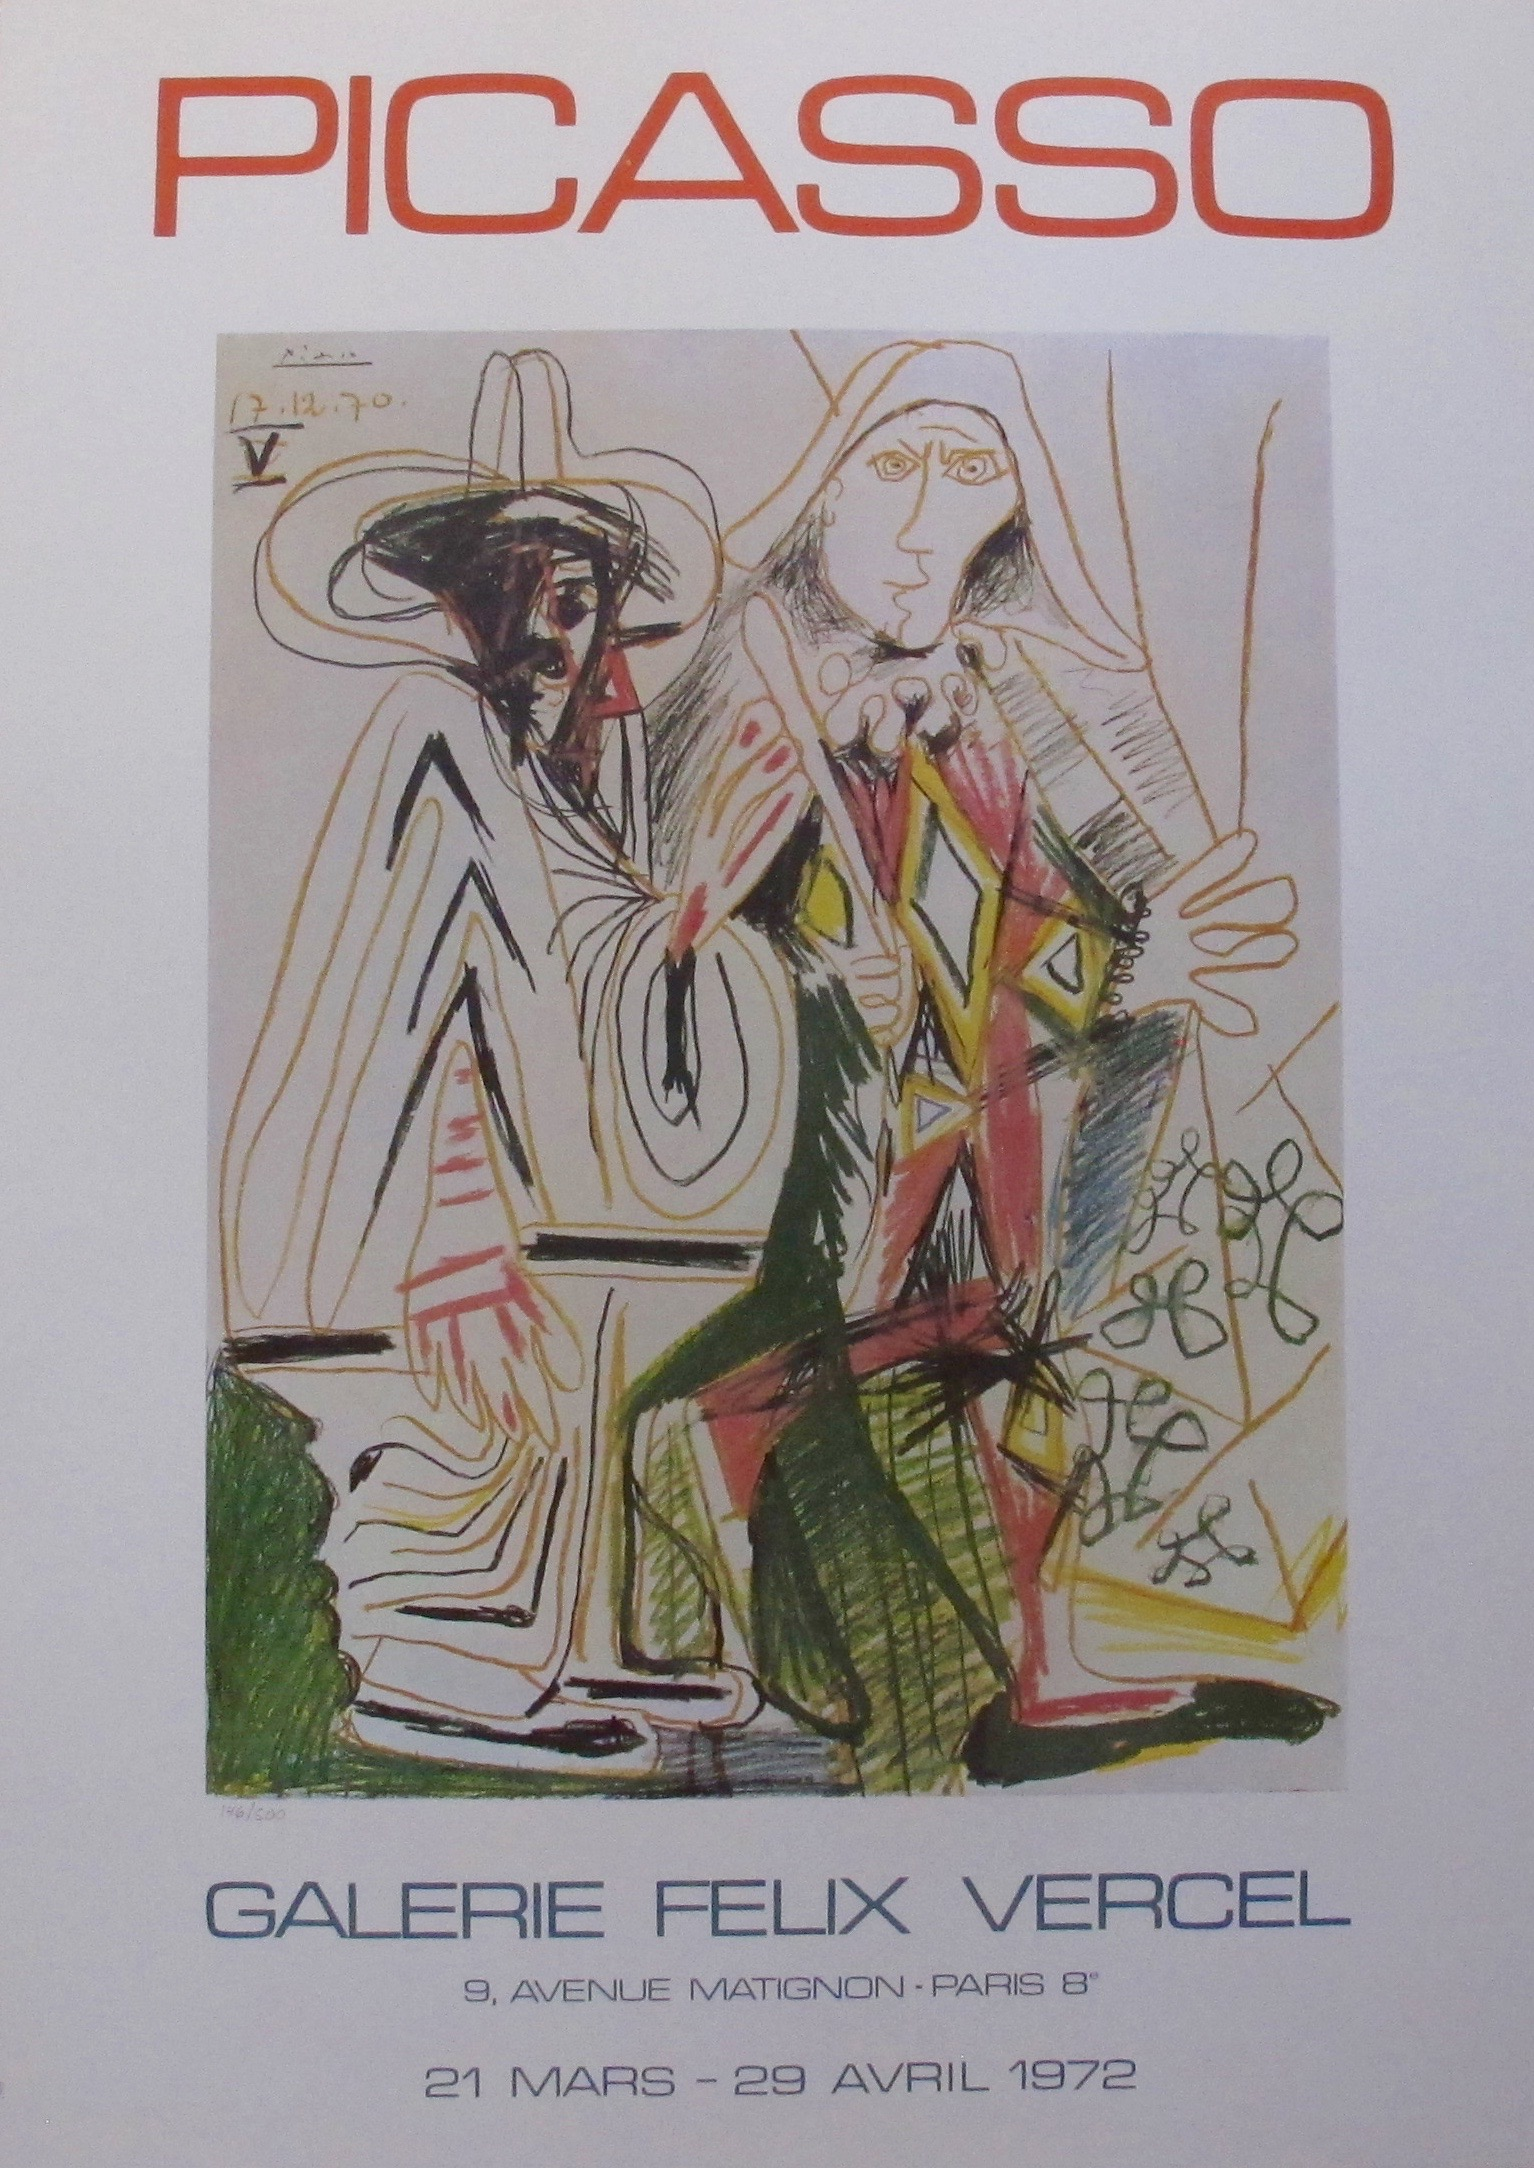 Pablo Picasso GALERIE FELIX VERCEL 1972 Plate Signed Limited Edition Lithograph